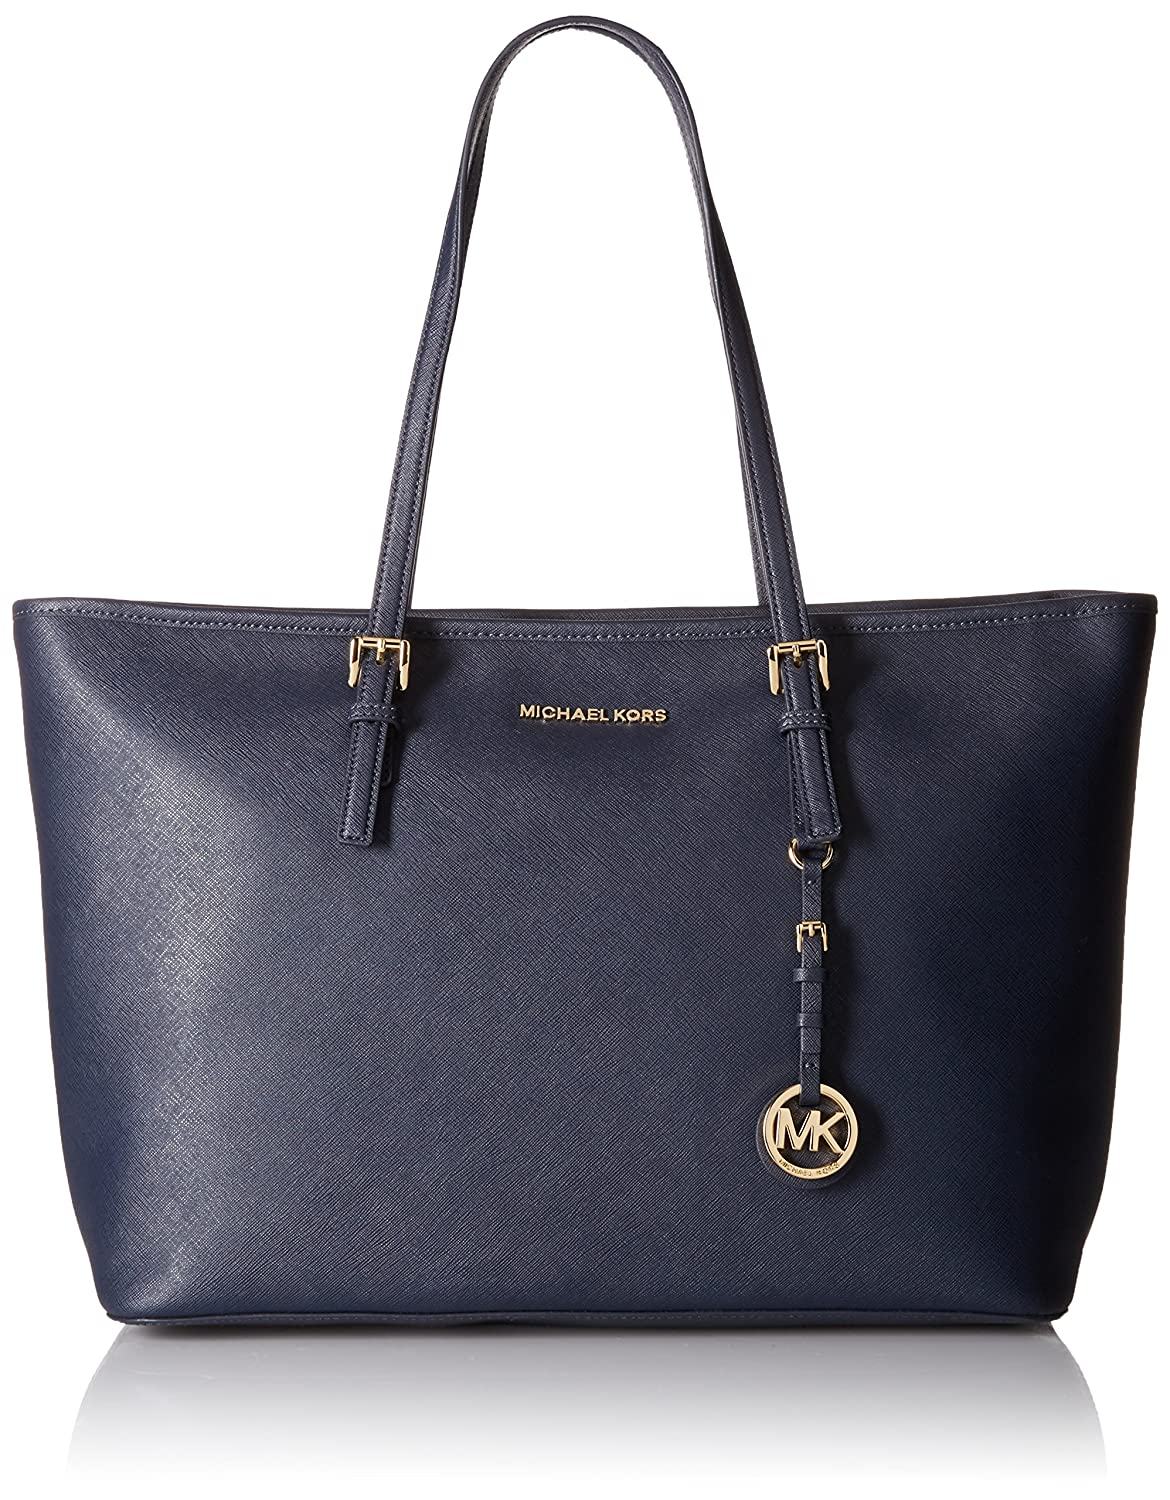 MICHAEL Michael Kors Women's Jet Set Medium Tote